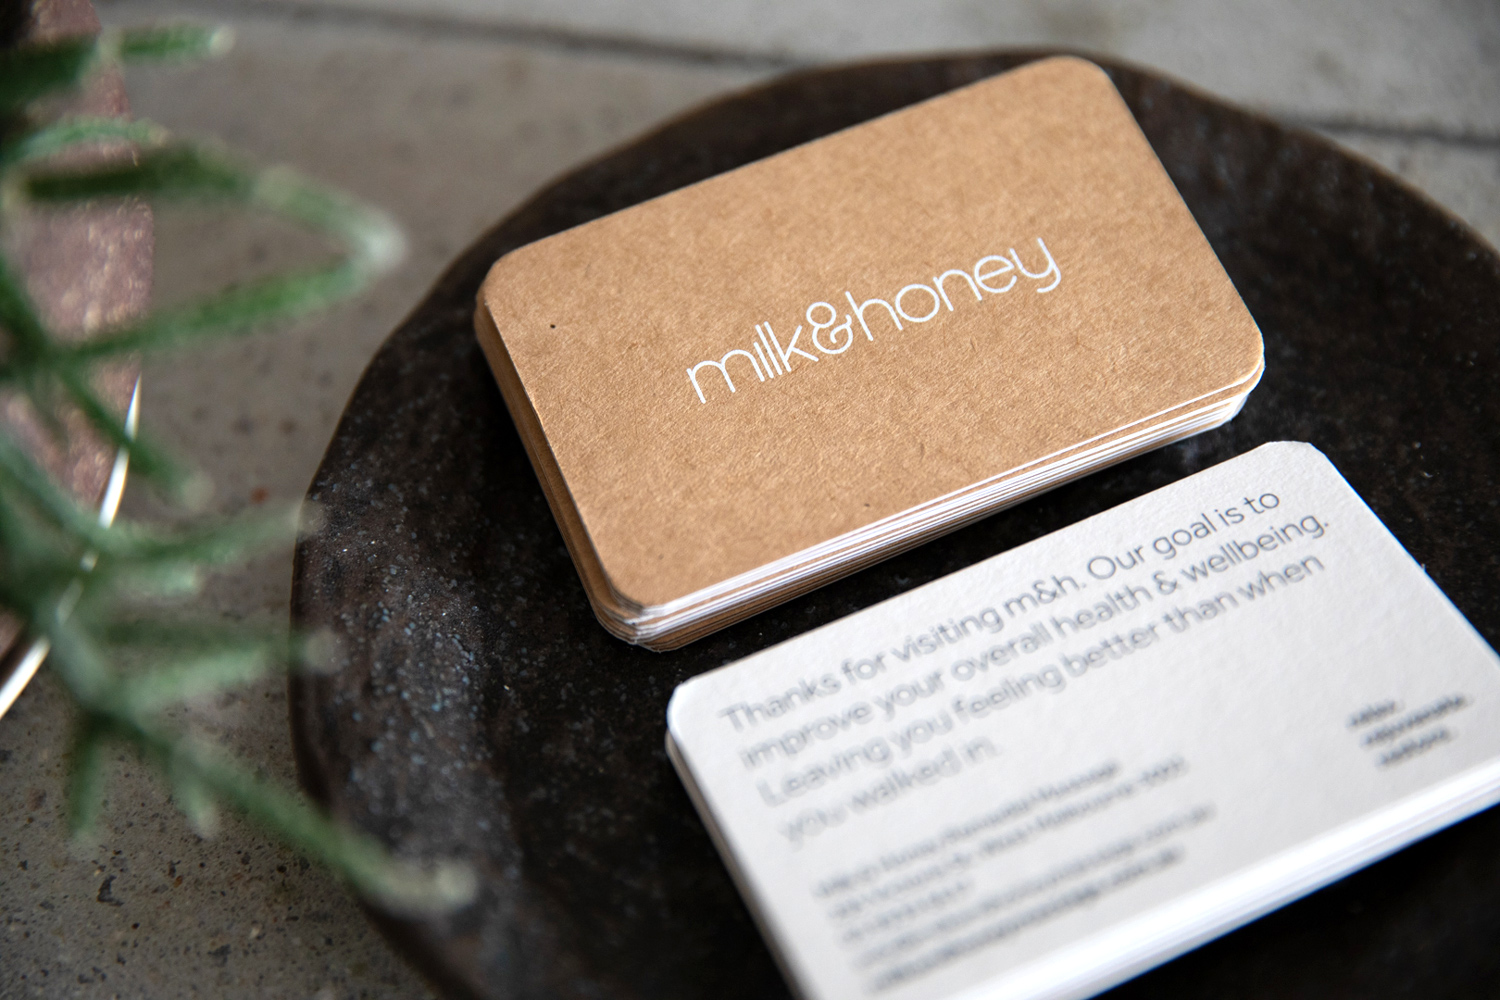 Milk & Honey Remedial Massage - – A refreshed identity for a modern clinic.